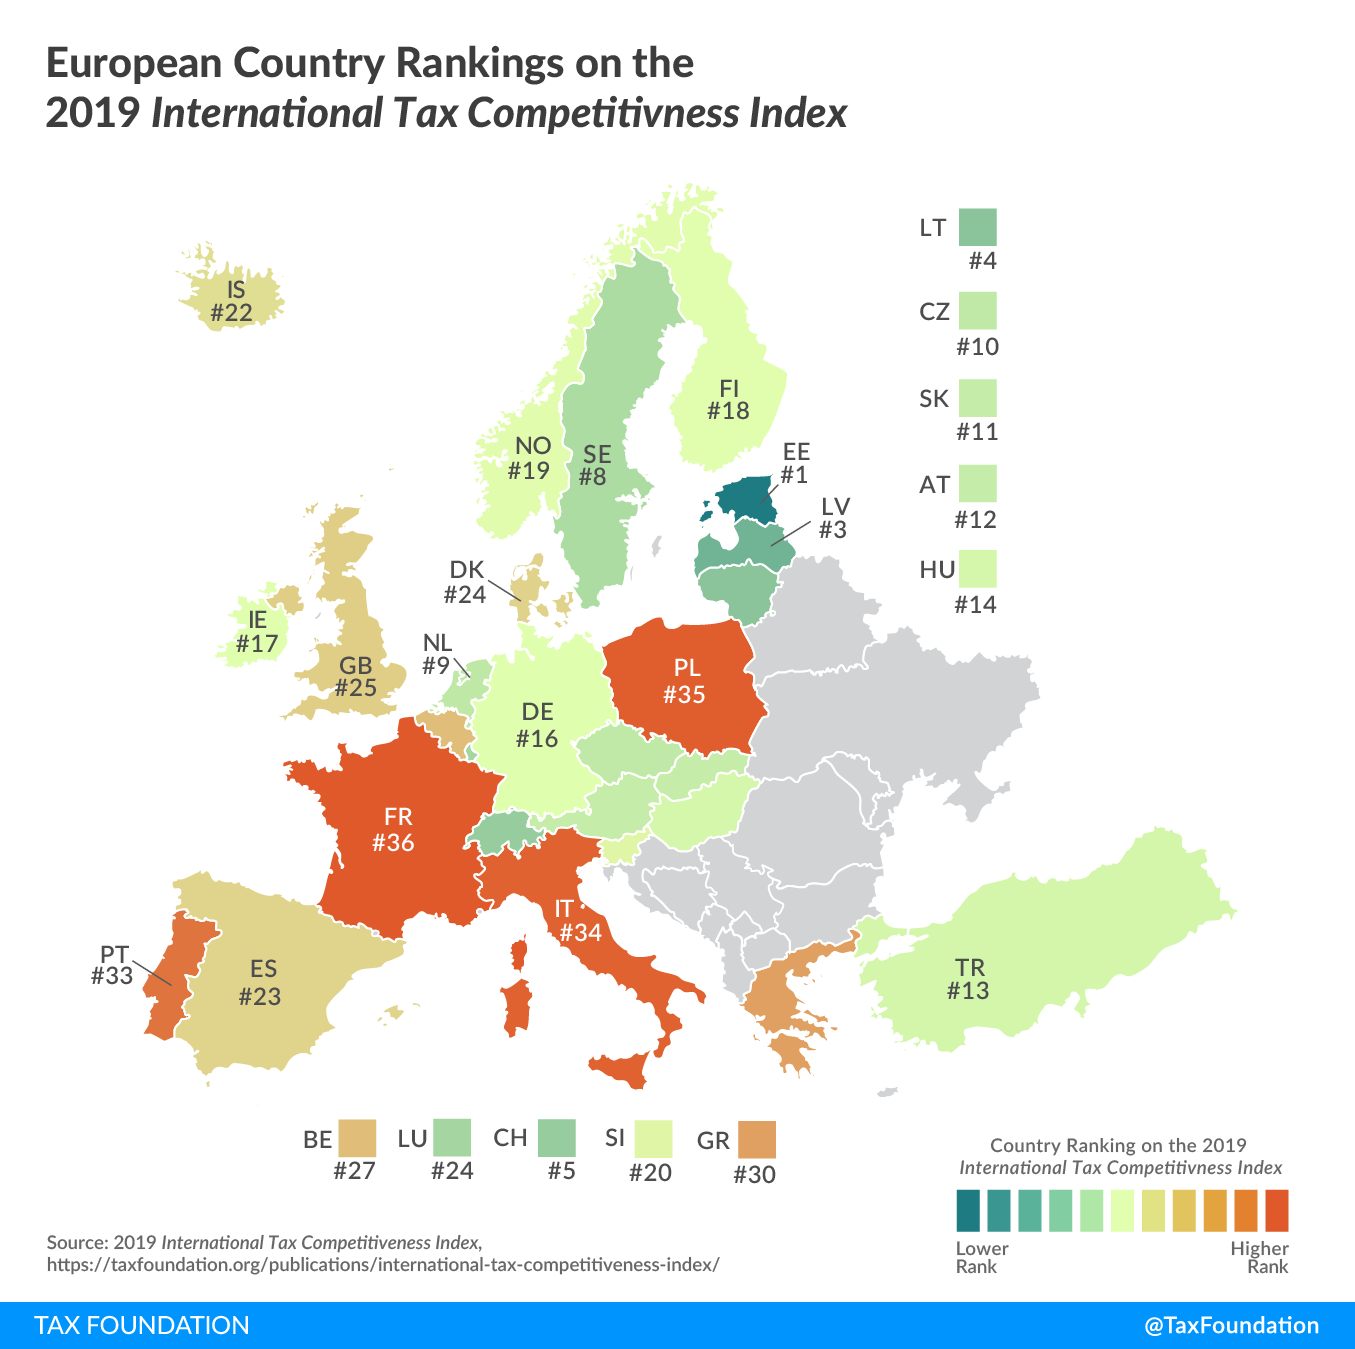 2019 European tax rankings, Best and Worst Tax Rankings in 2019, Best and Worst European Countries on Taxes